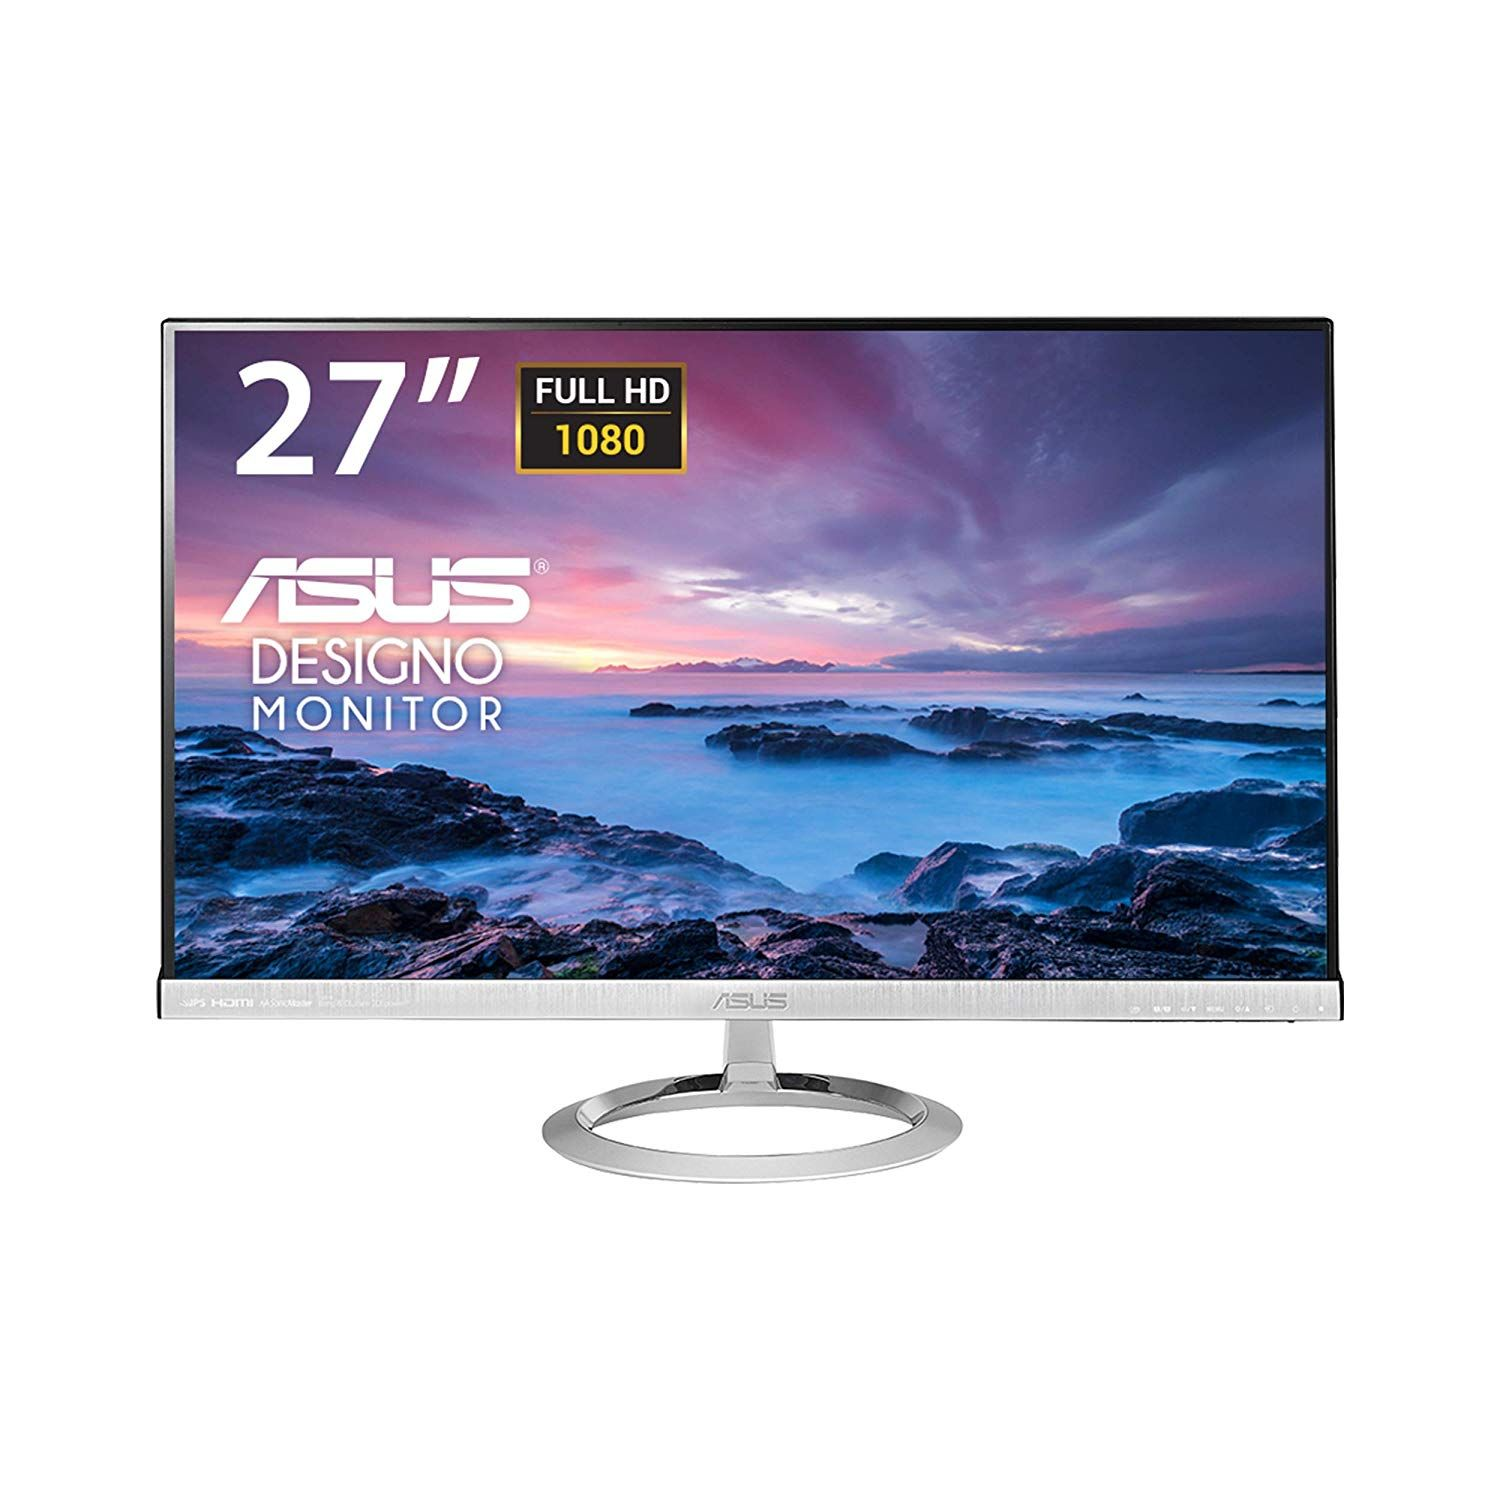 Asus Mx279h 27 Inch Monitor Monitor Lcd Monitor Built In Speakers